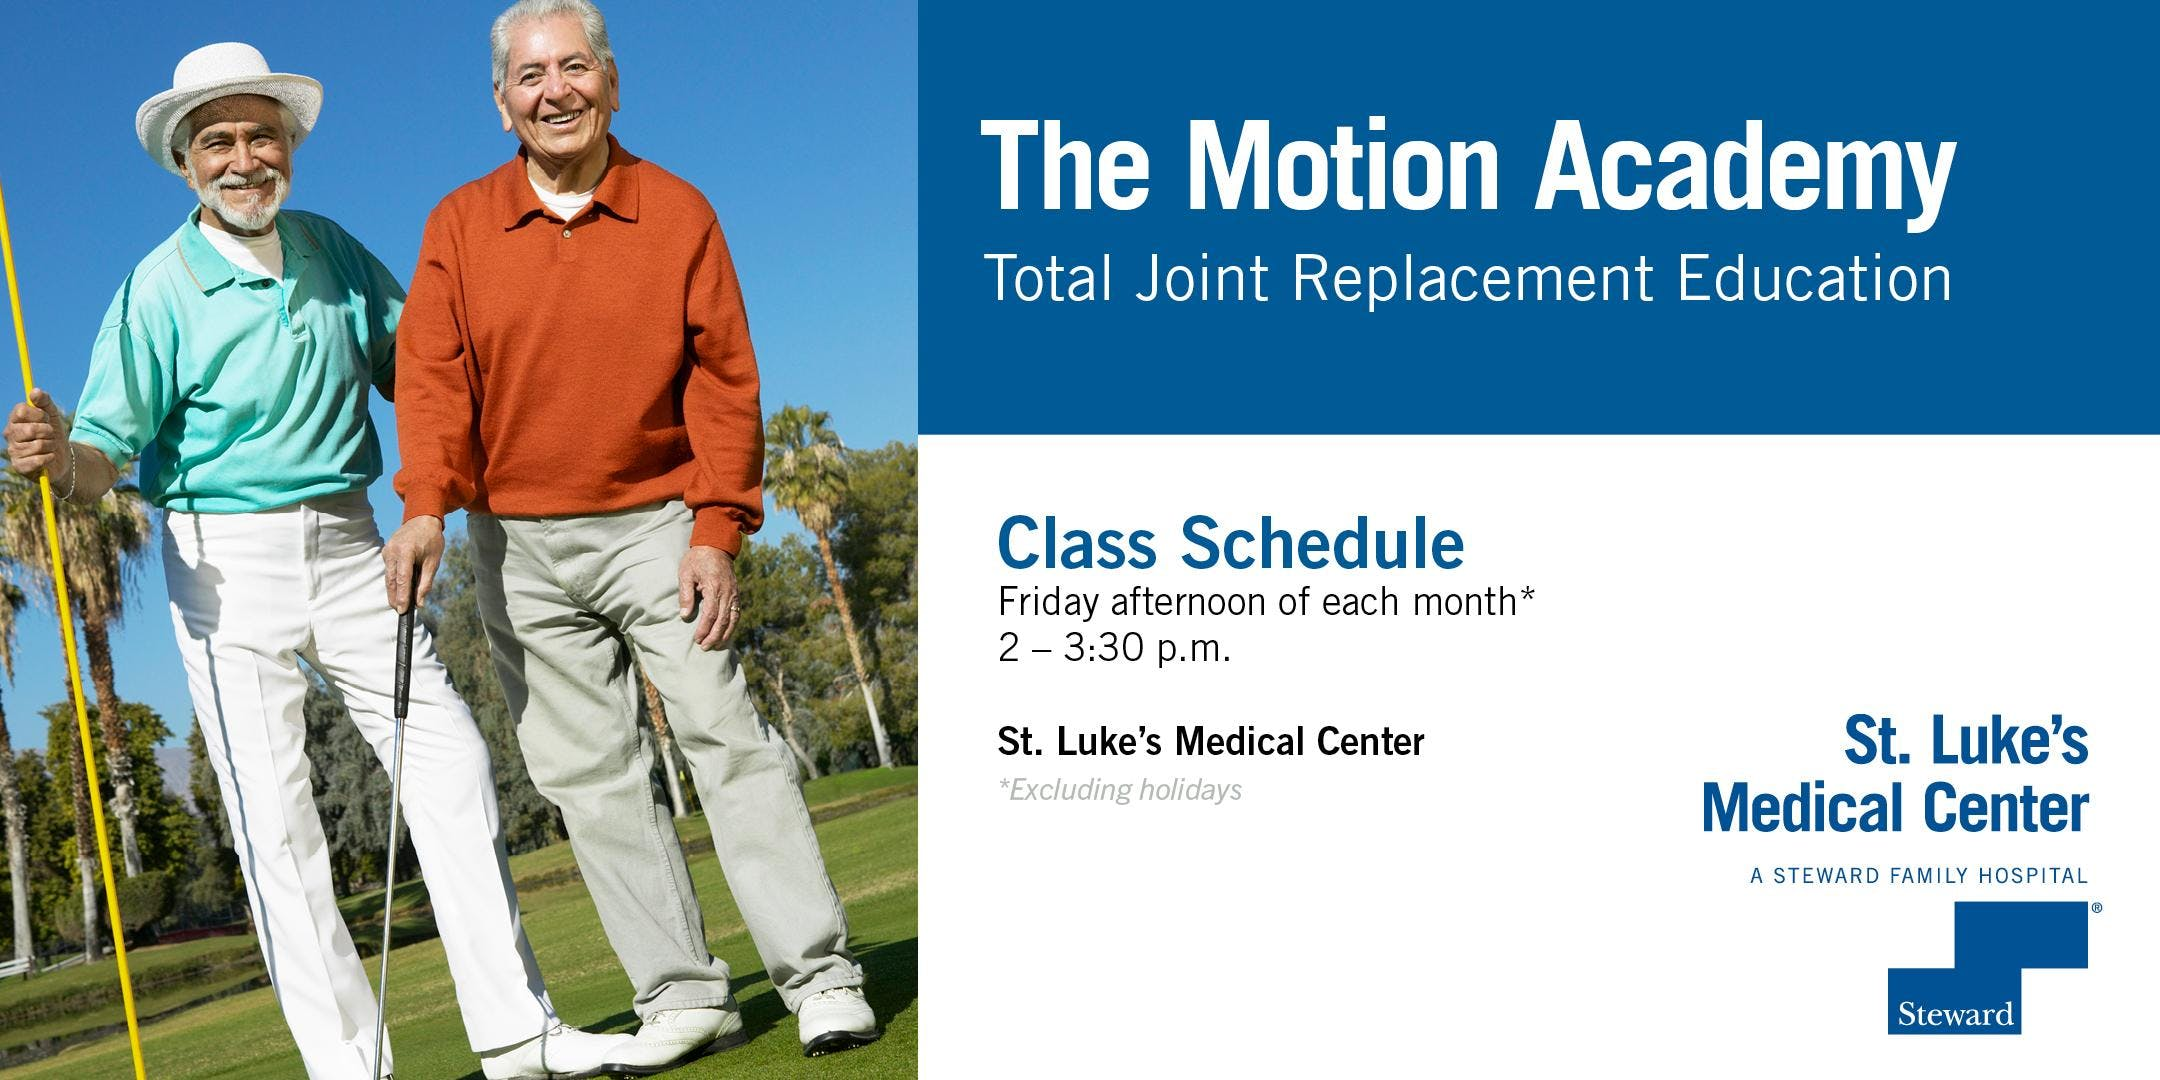 St. Luke's Medical Center Motion Academy - Total Joint Replacement